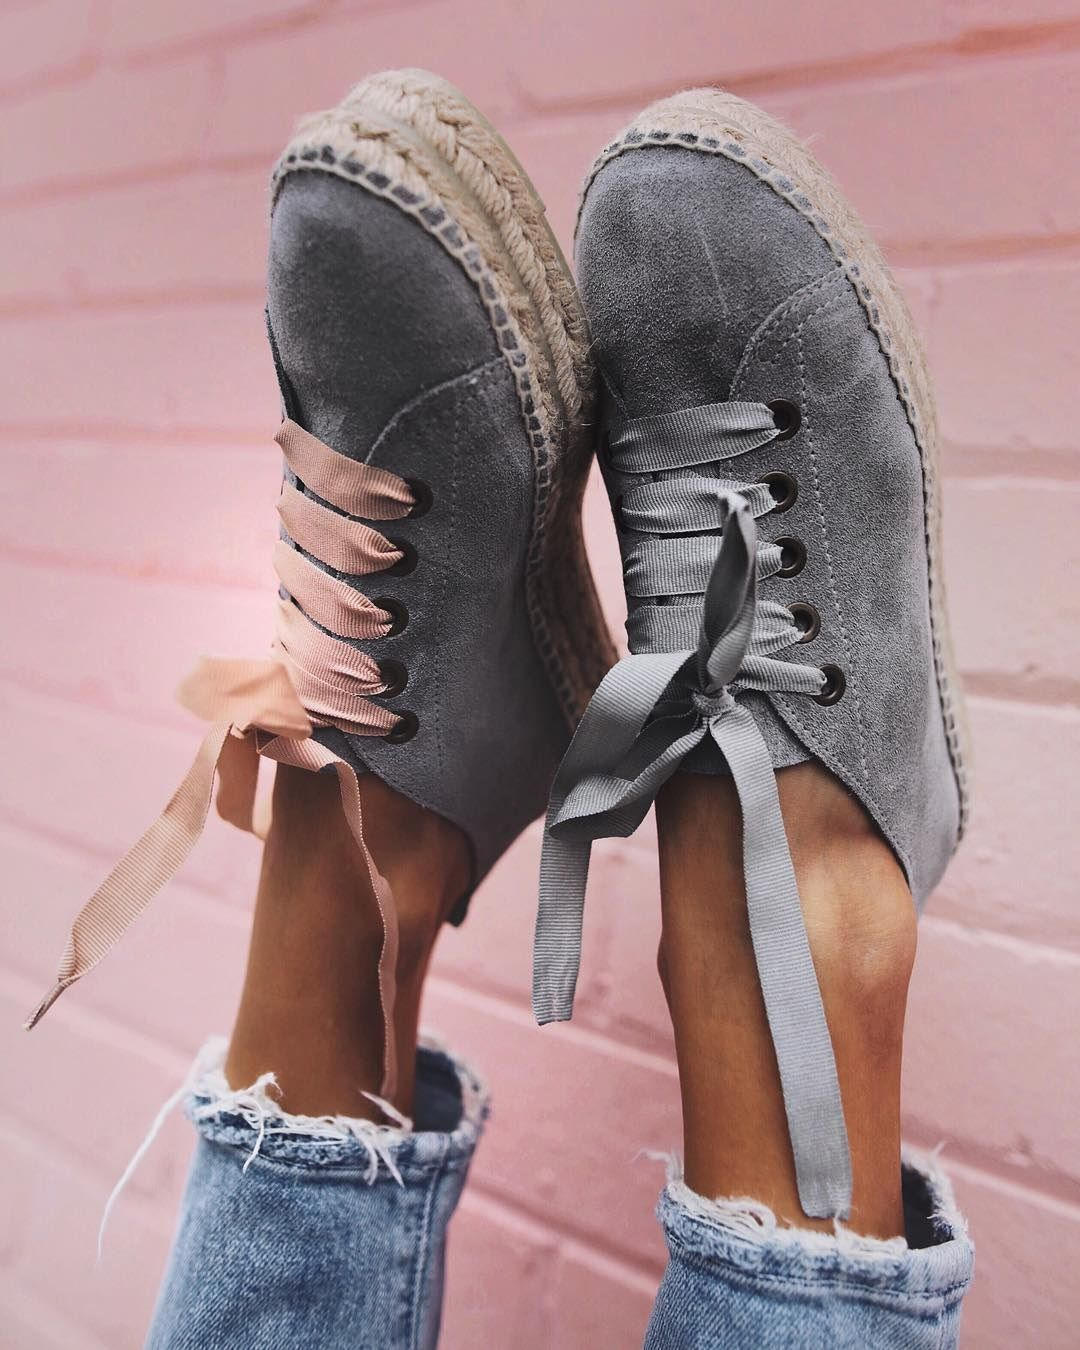 With the practicality of a trainer combined with the summery feel of an espadrille, sneakerdrilles (as coined by WhoWhatWear) are set to be the run-around shoe of the season. For relaxed, easy style, Spanish label Manebi's alternative to chunky leather designs are ideal for hot weather days.